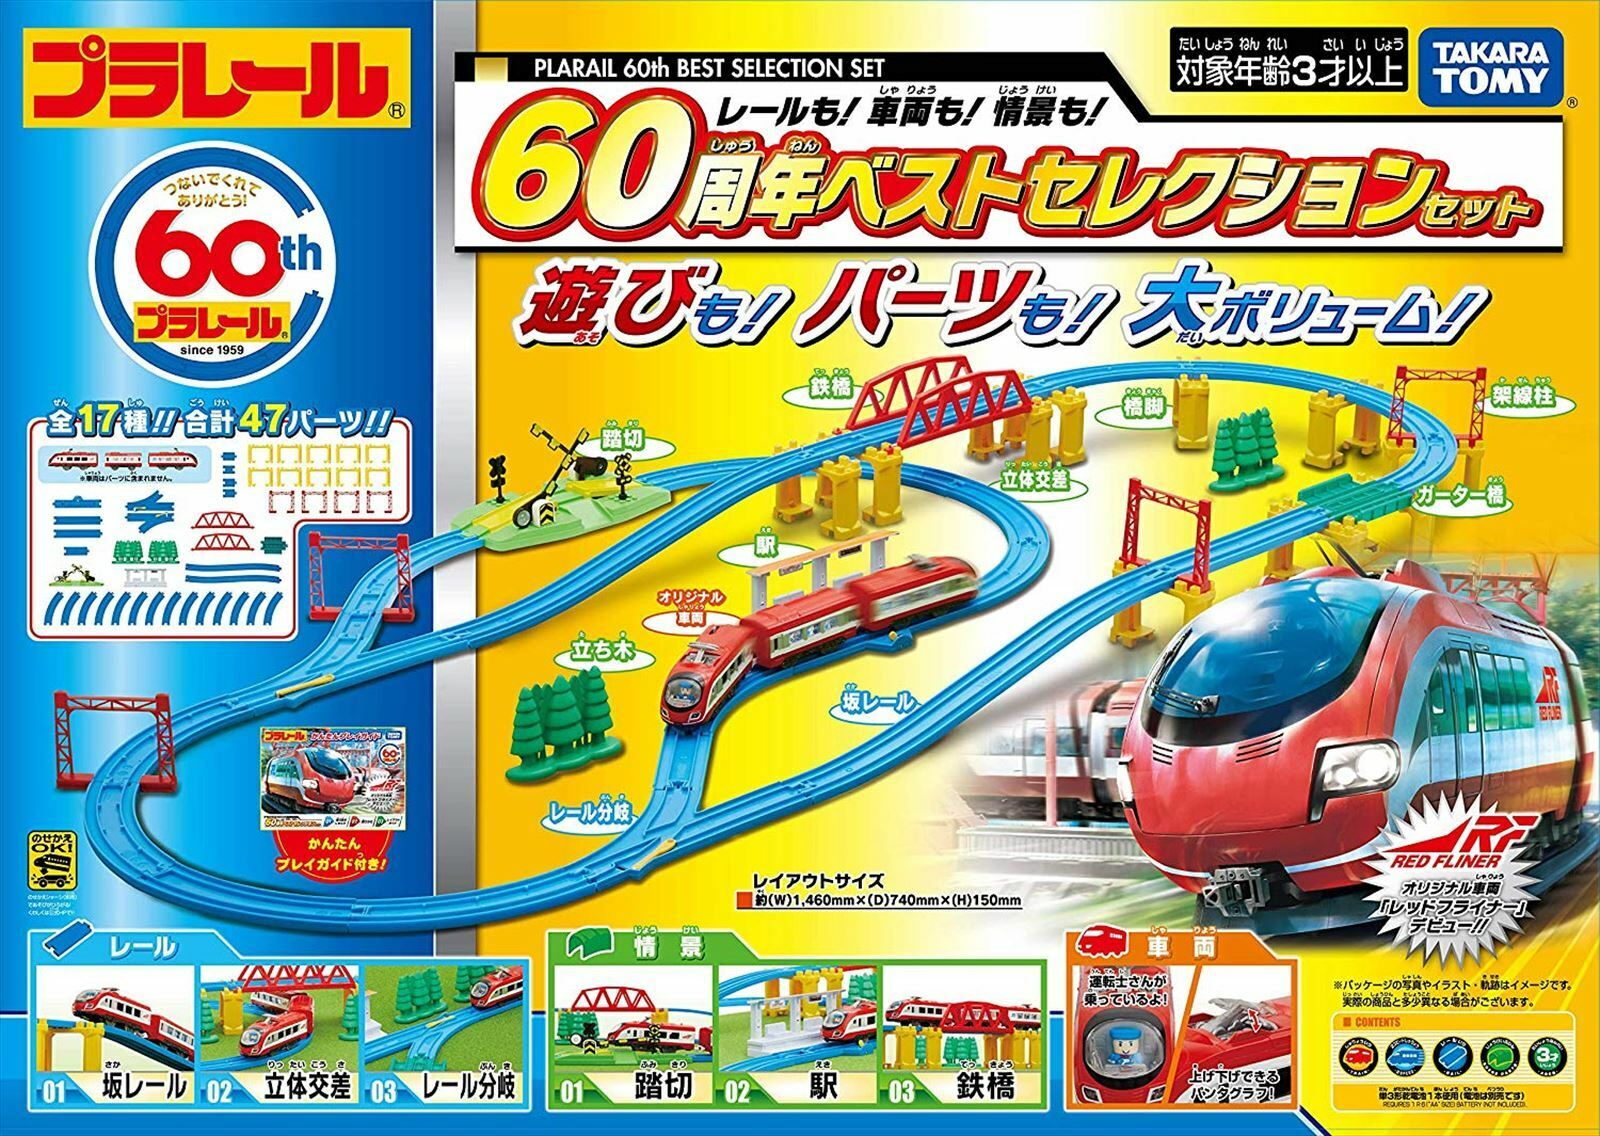 Plarail Rail 60th Anniversary  Best Selection Set Japan giocattolo Gre Prix 2019 F S  prima i clienti